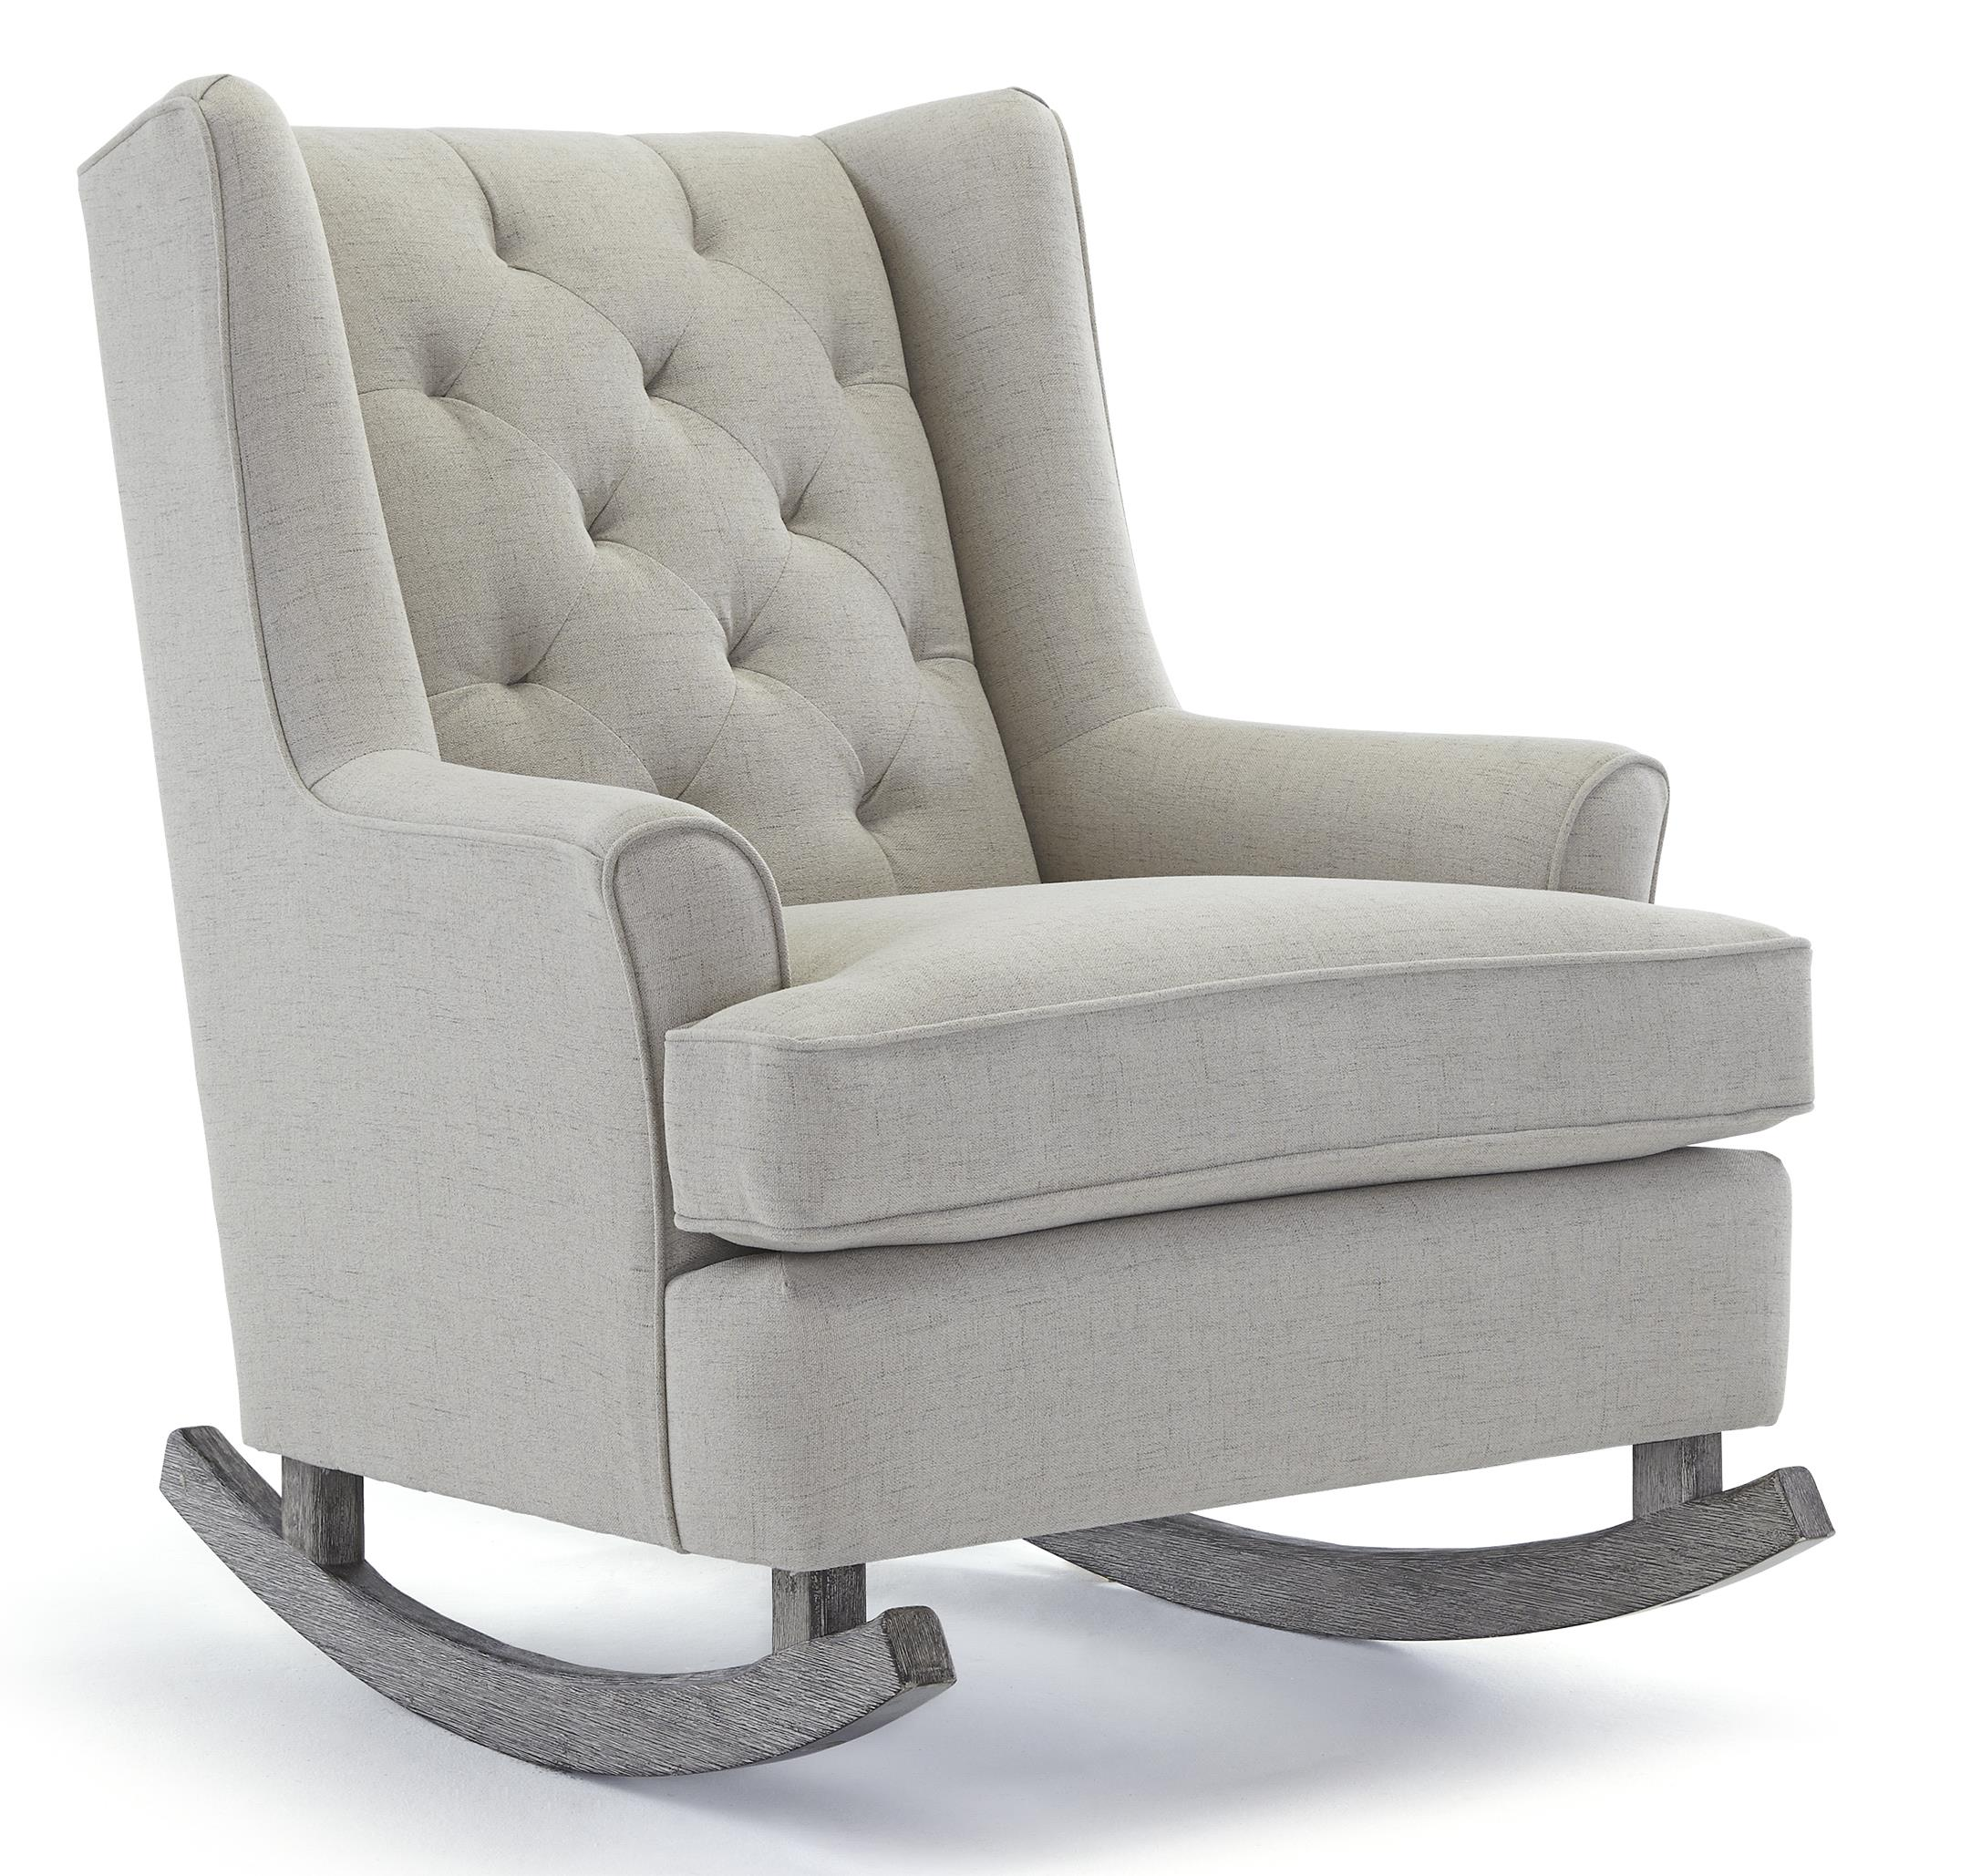 Best Home Furnishings Runner Rockers Paisley Rocking Chair - Item Number: 0165-20659